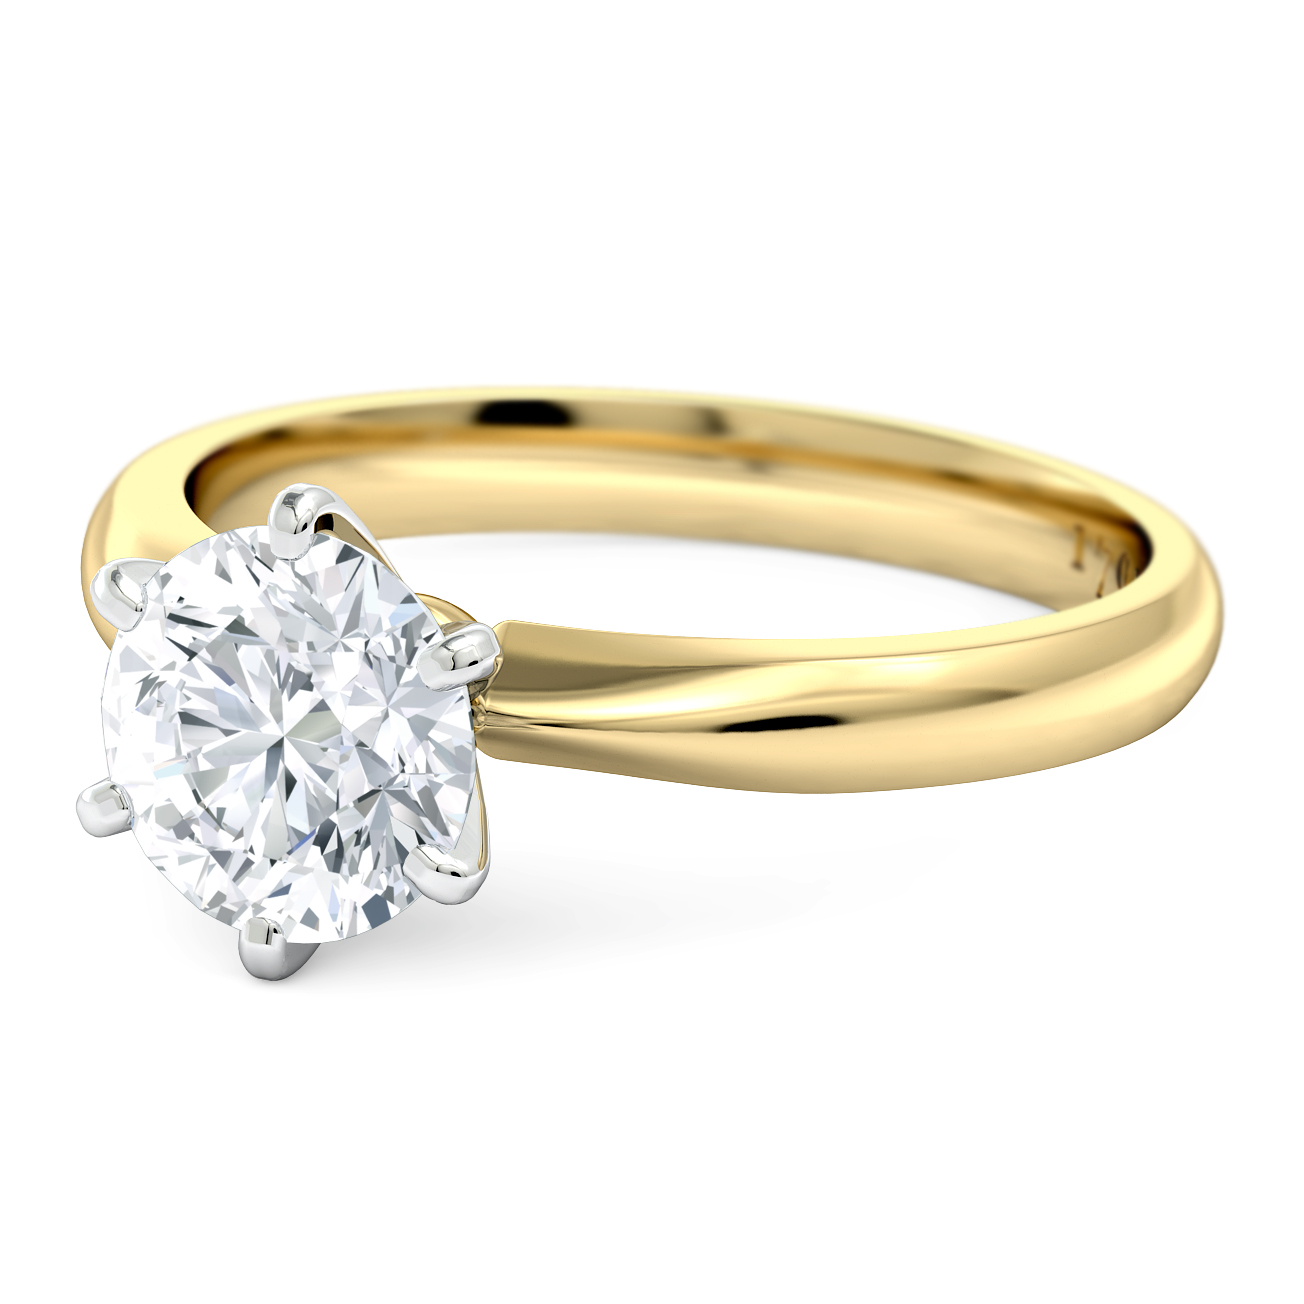 Diamond Ring In Text